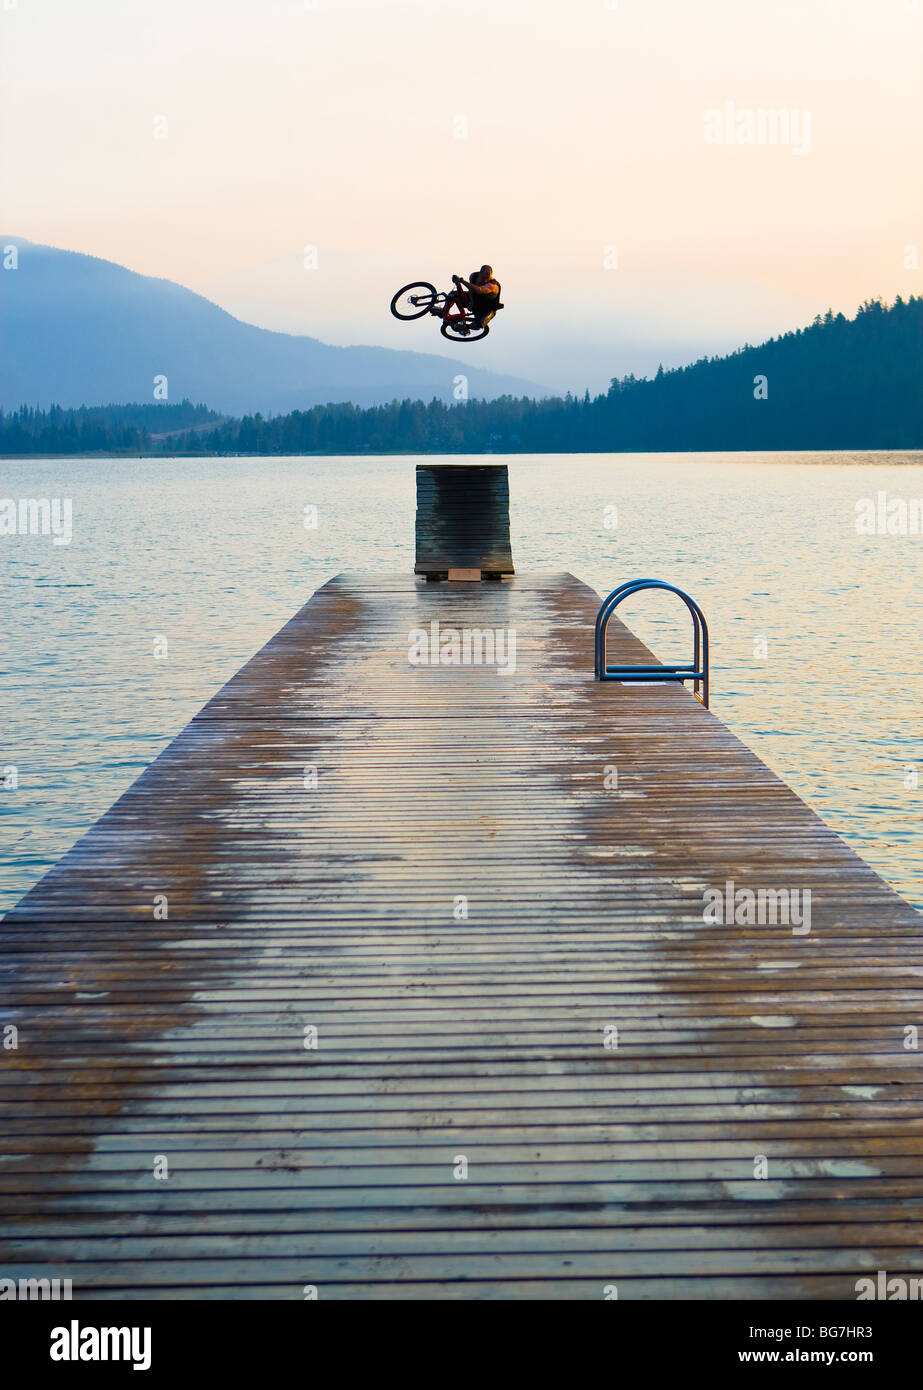 A freestyle mountain bike rider practices high risk tricks off a jump ramp on a dock into a lake. - Stock Image